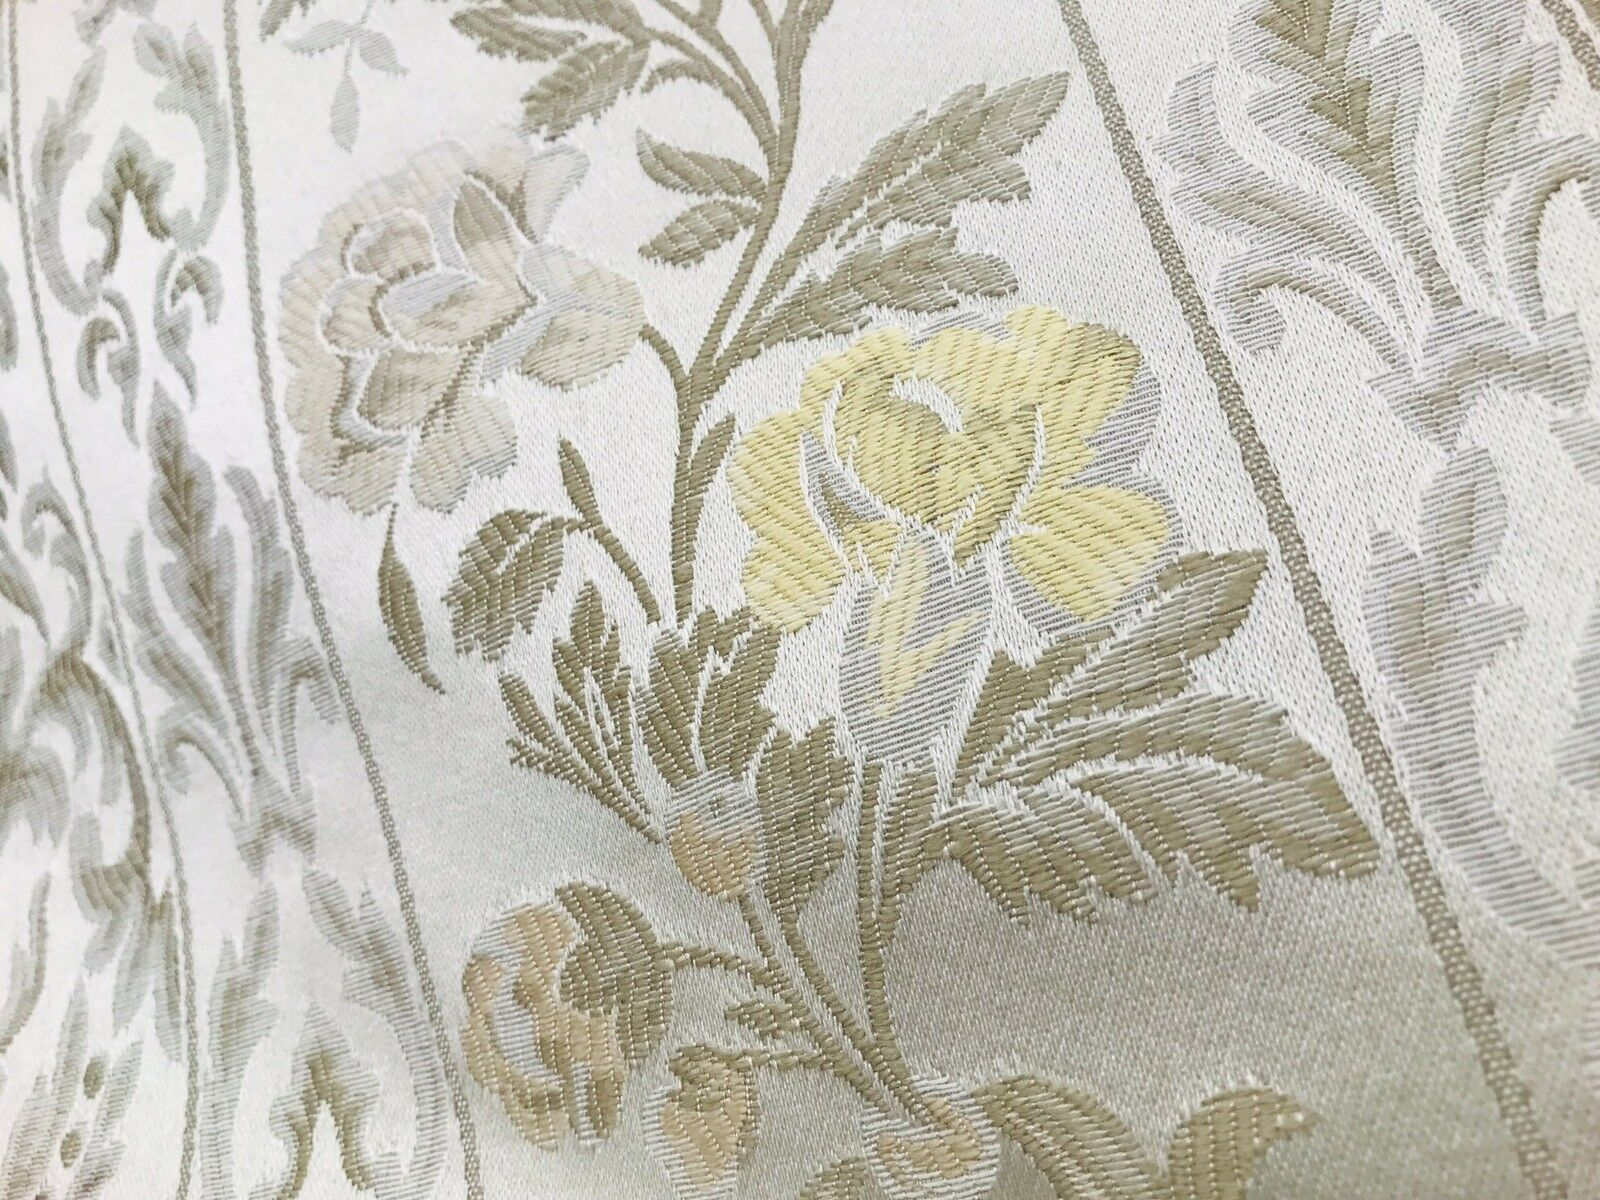 SWATCH Italian Brocade Satin Fabric- Ivory- Floral Upholstery Neoclassical Louis